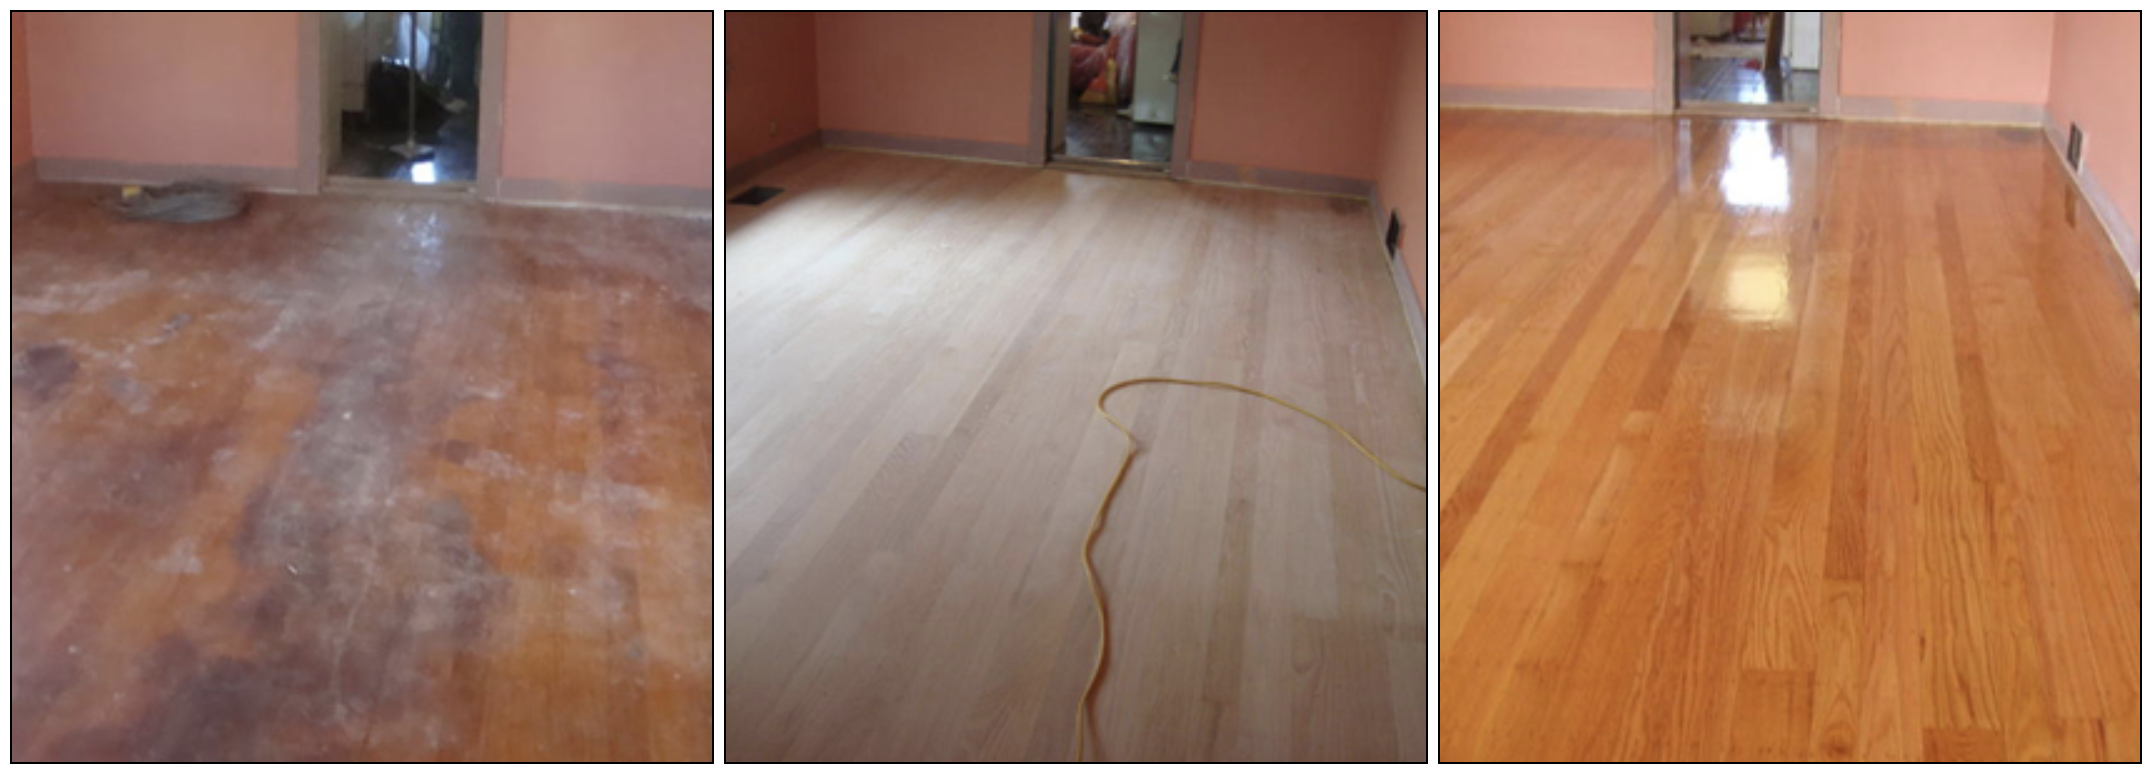 Hardwood Floor Refinishing Boston Hardwood Floor